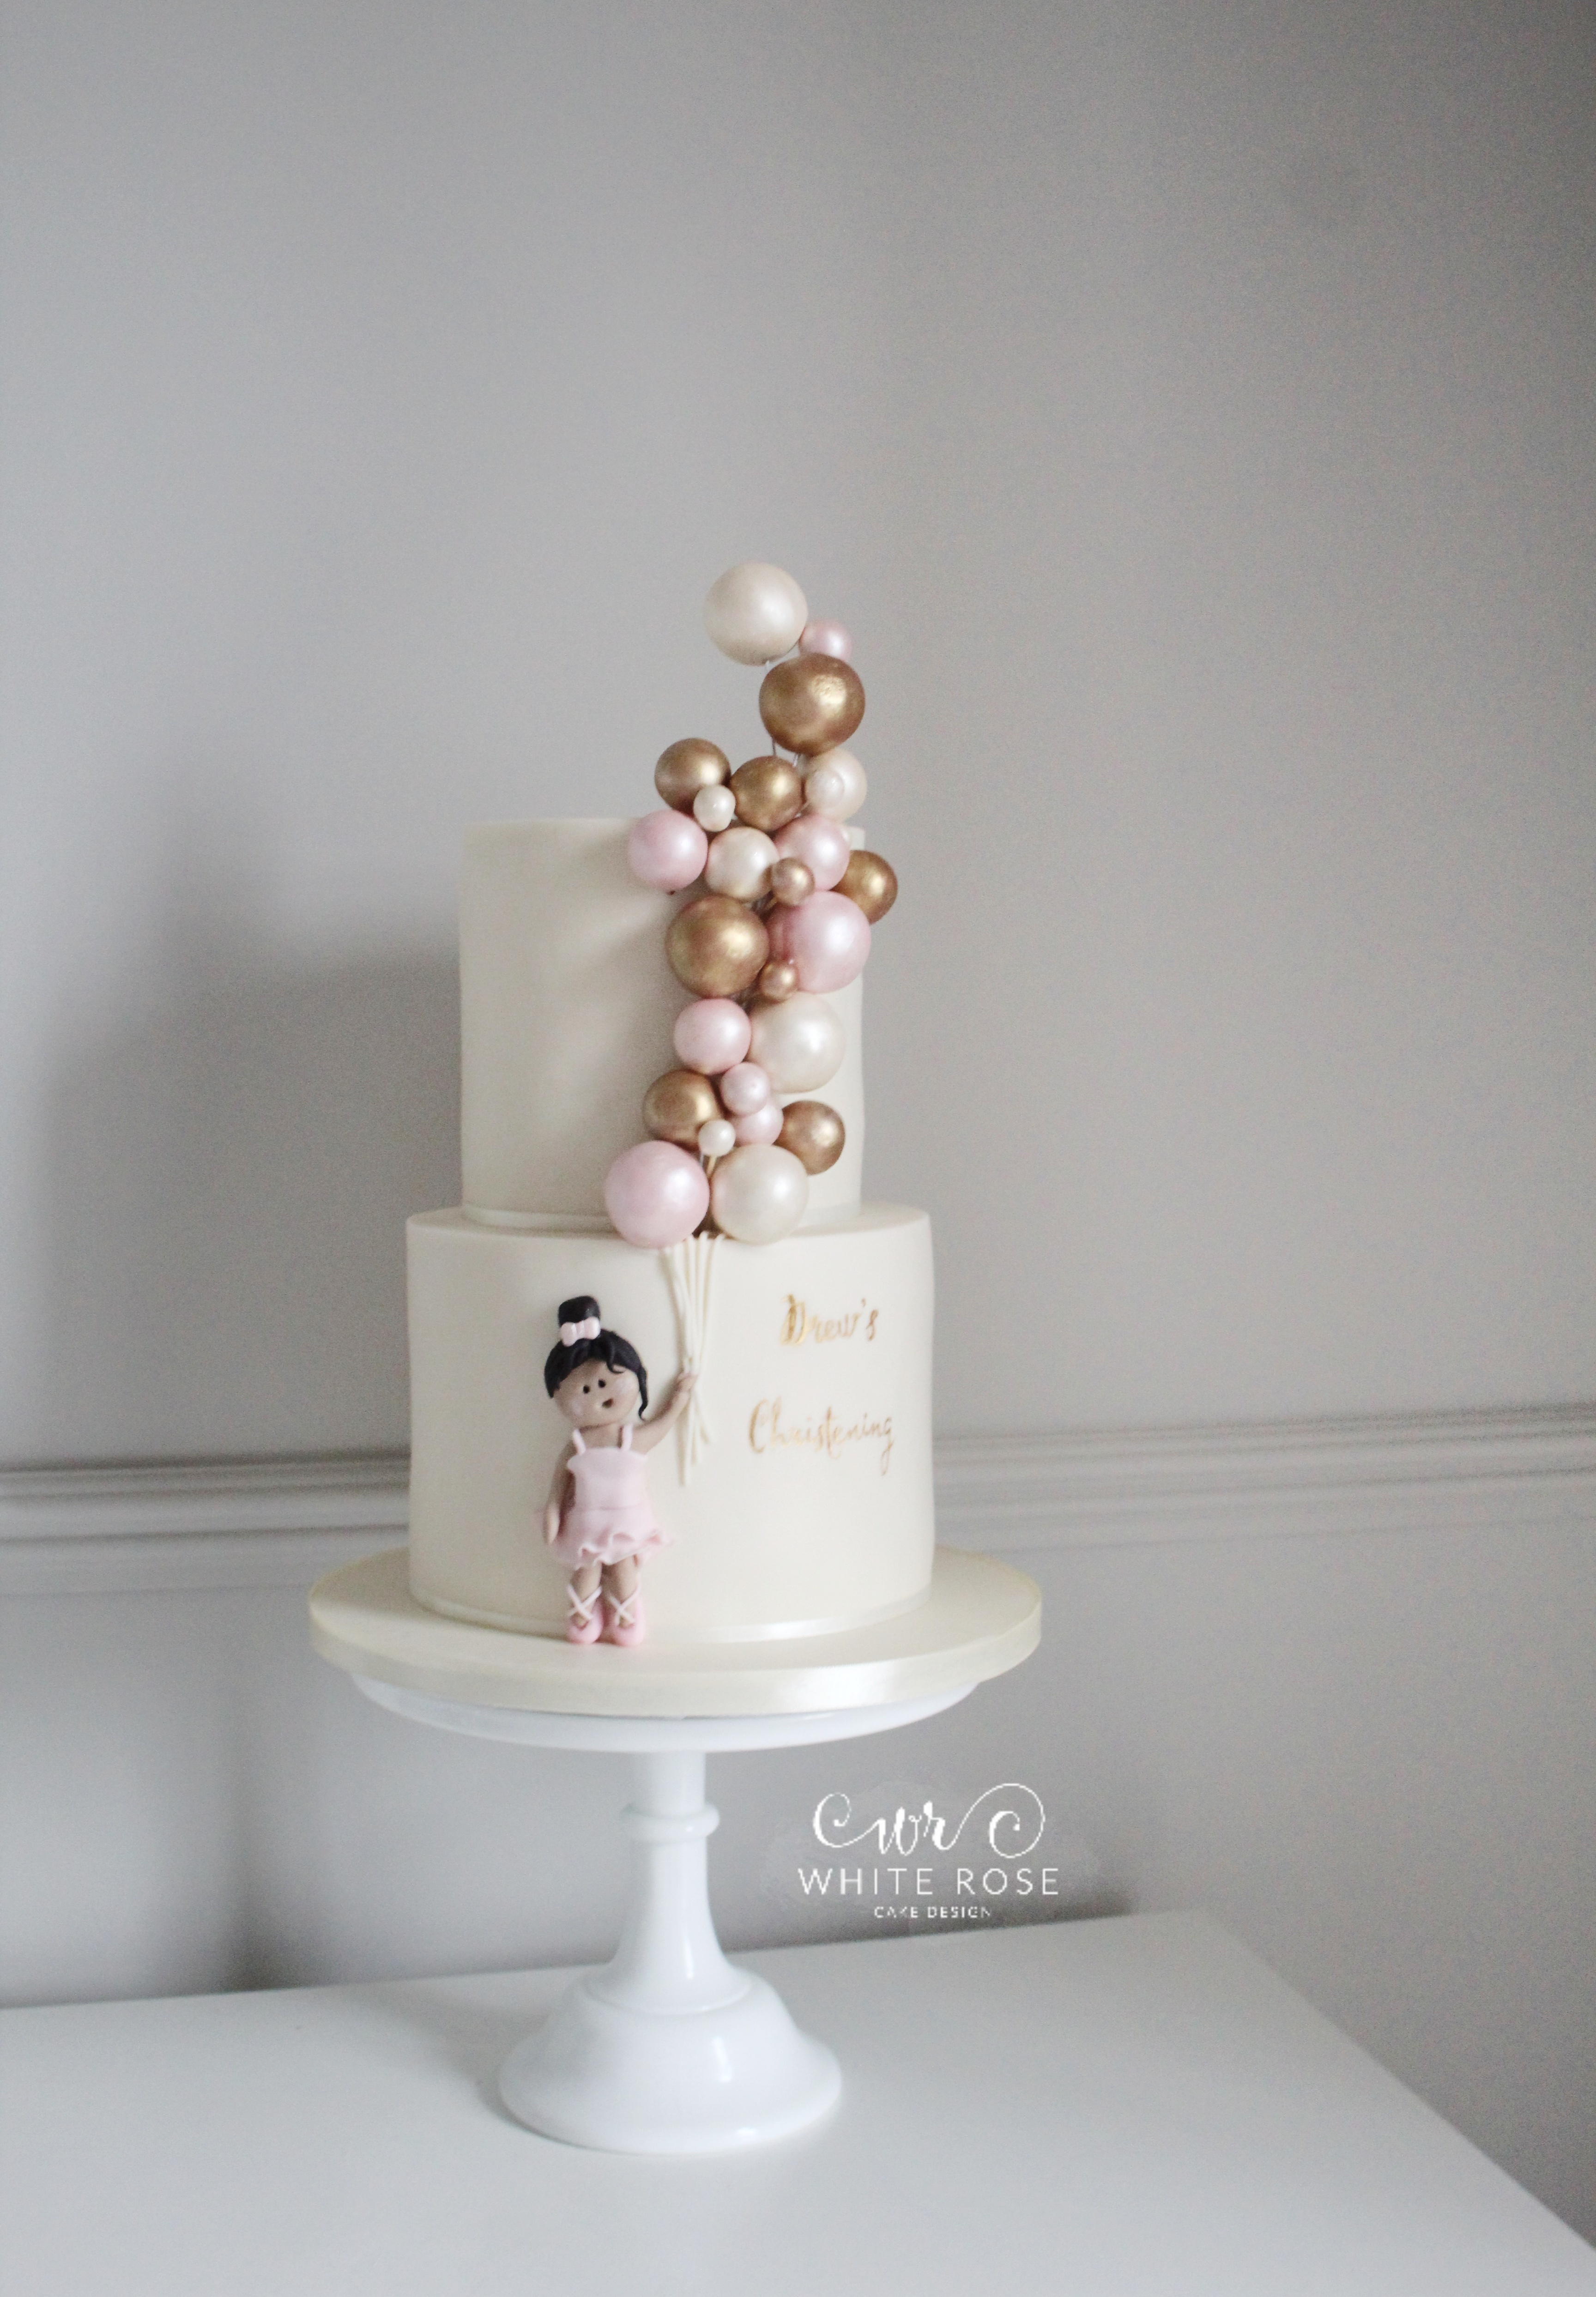 Pink and Gold Balloons Christening Cake by White Rose Cake Design in Holmfirth